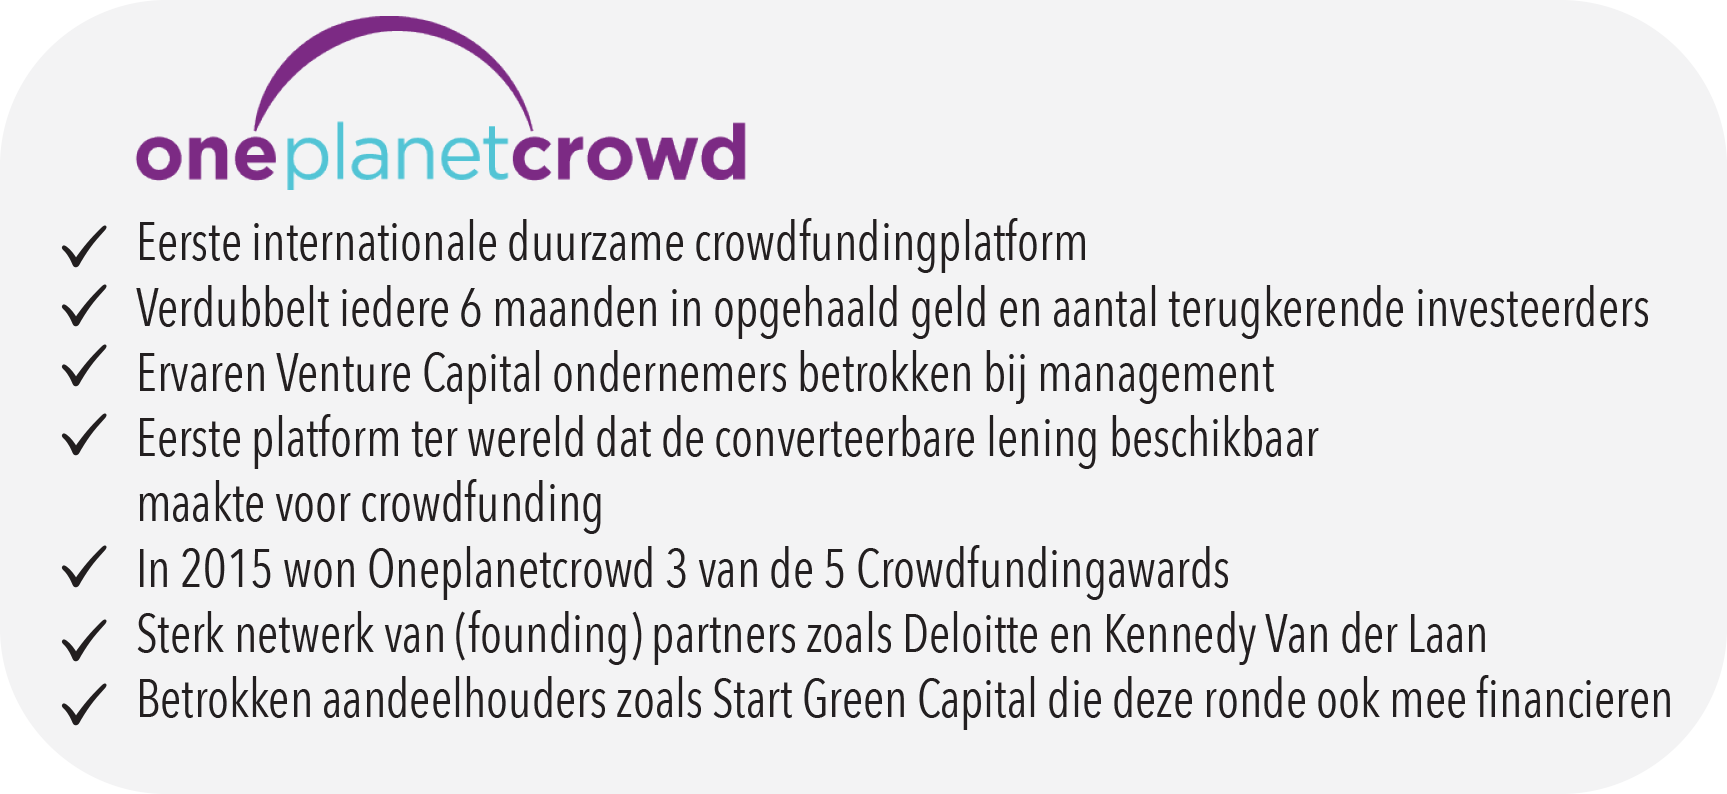 Oneplanetcrowd facts